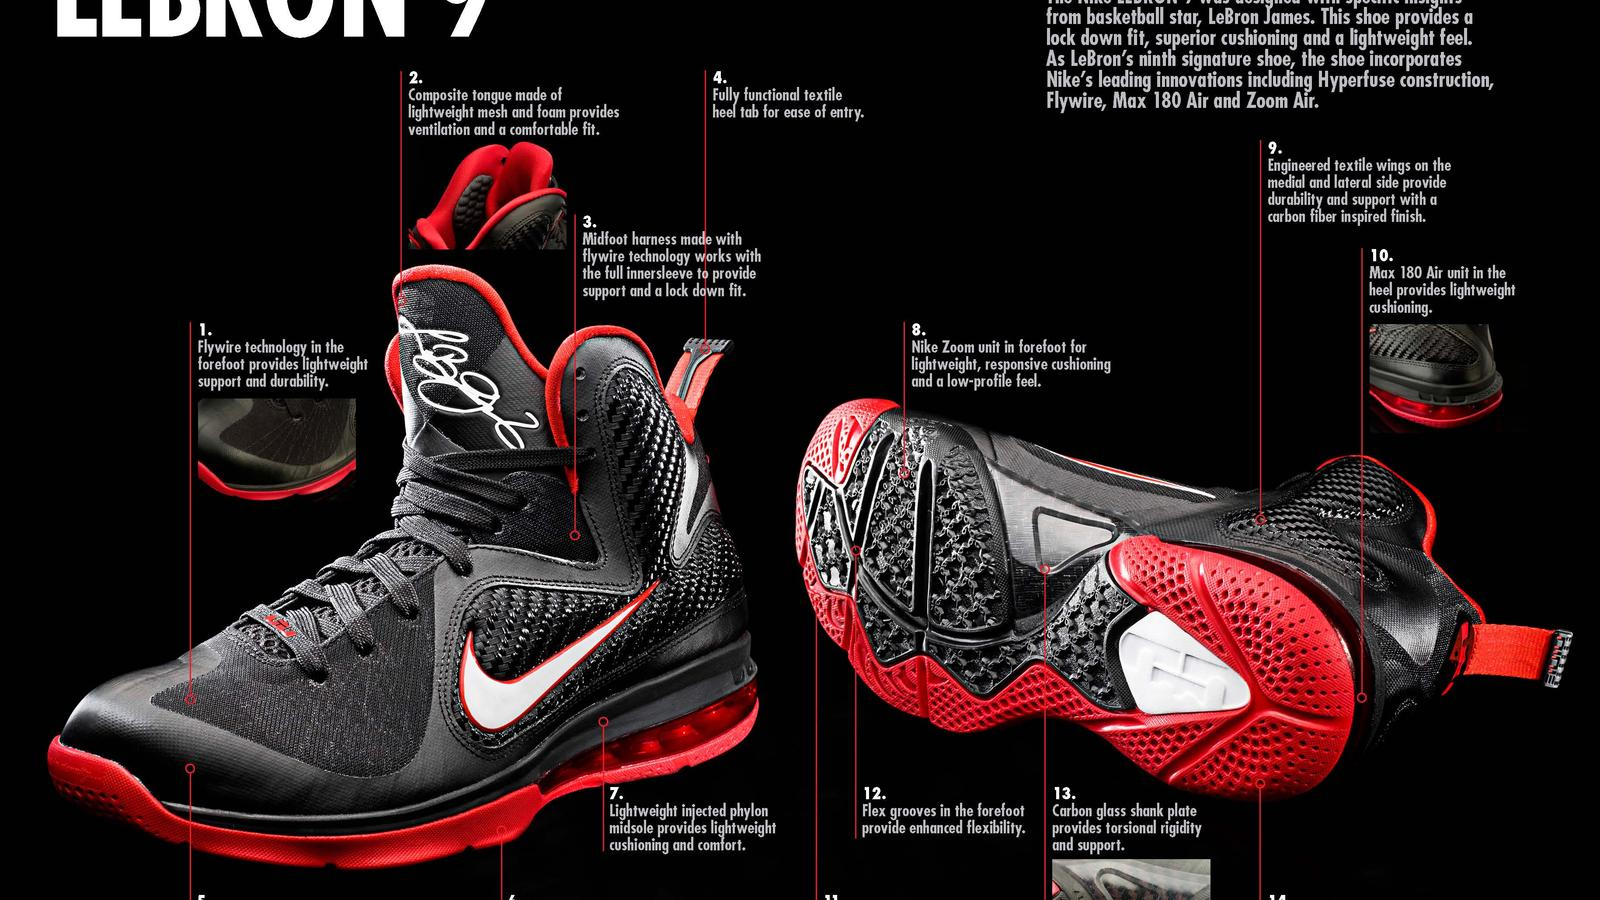 Lebron Nike Basketball 9 The Innovation Defines Performance With wvmnN80